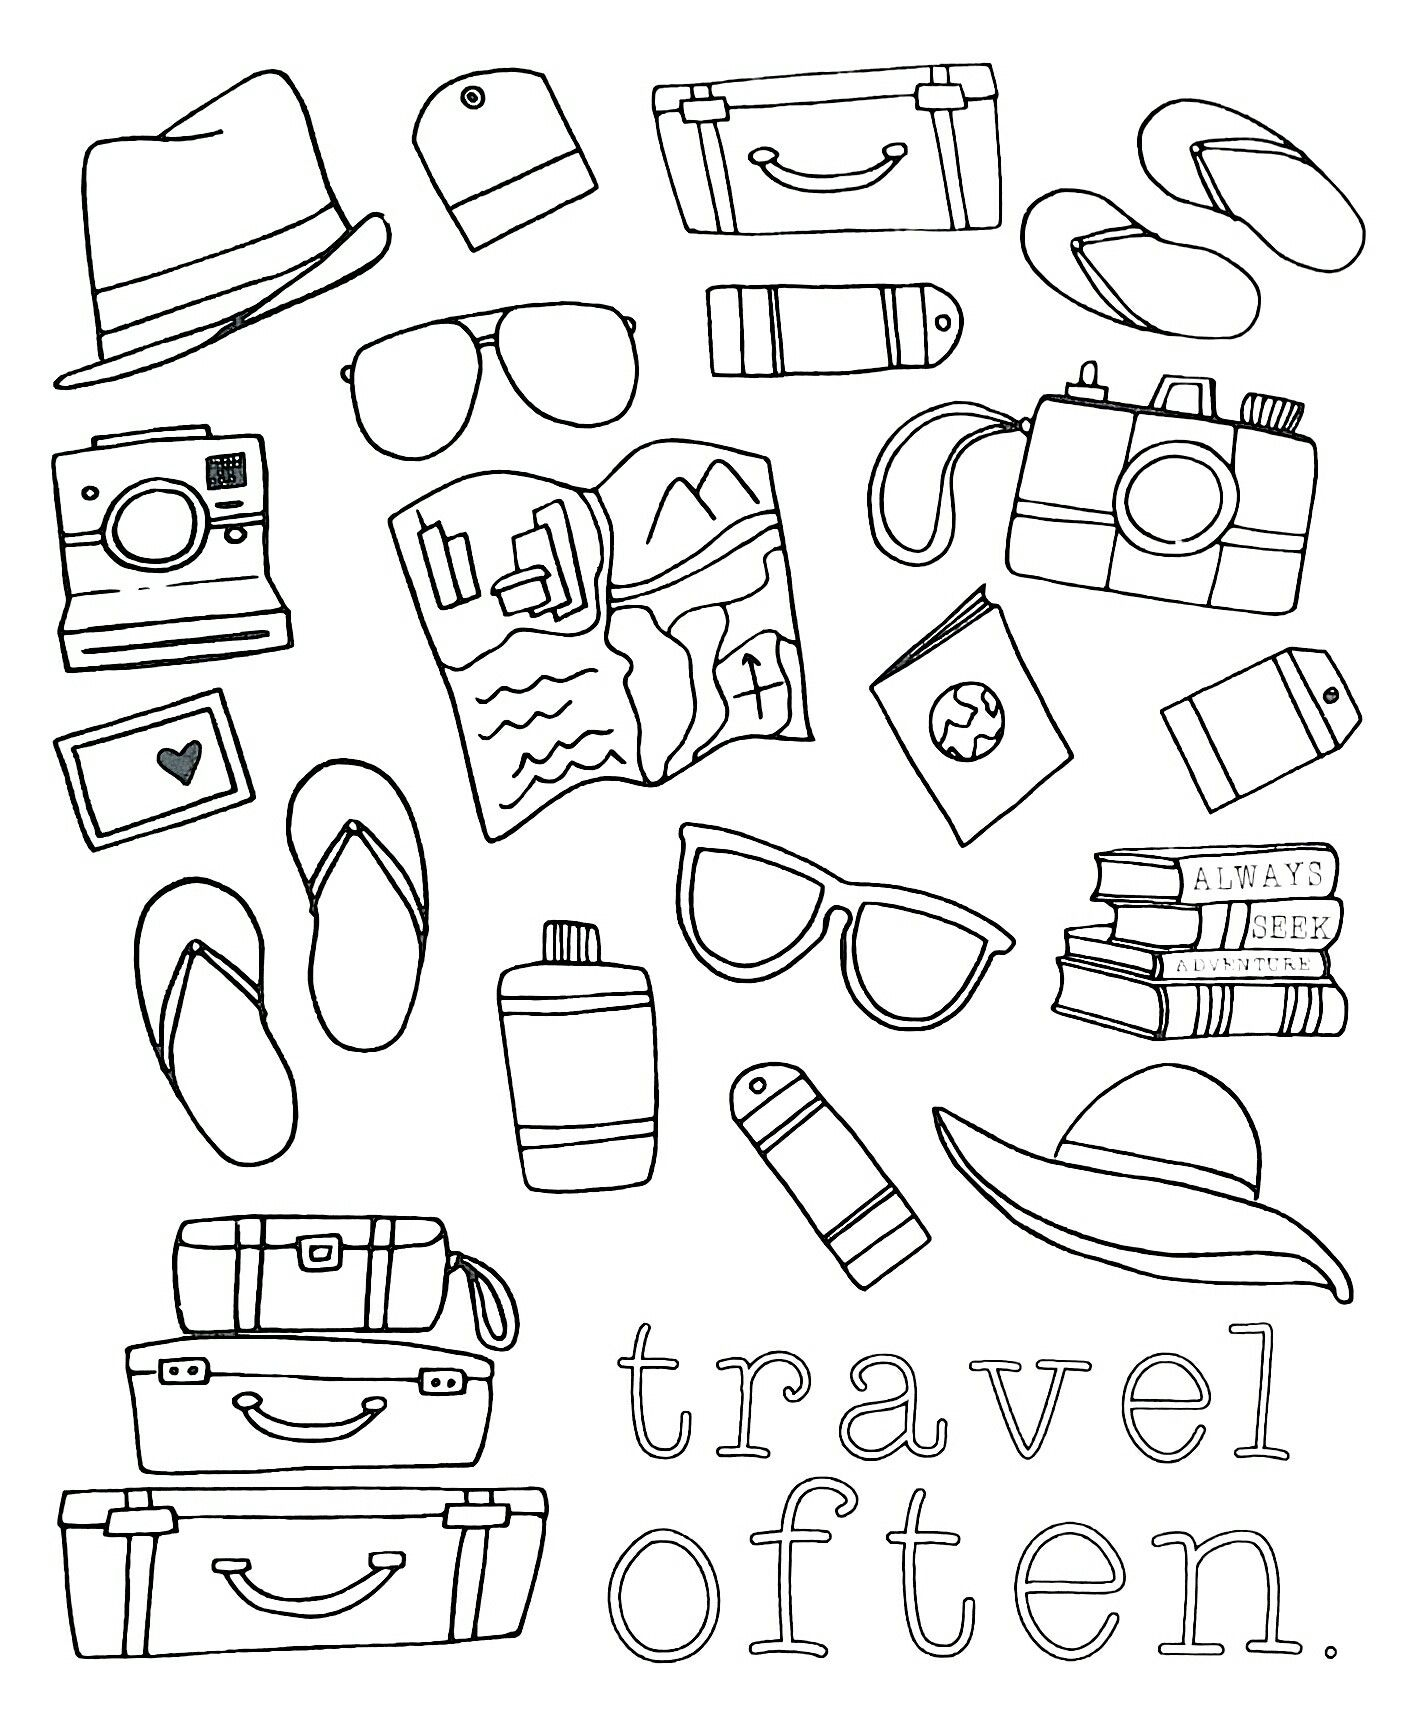 Travel Often Adult Coloring Page Bullet Journal Decoration